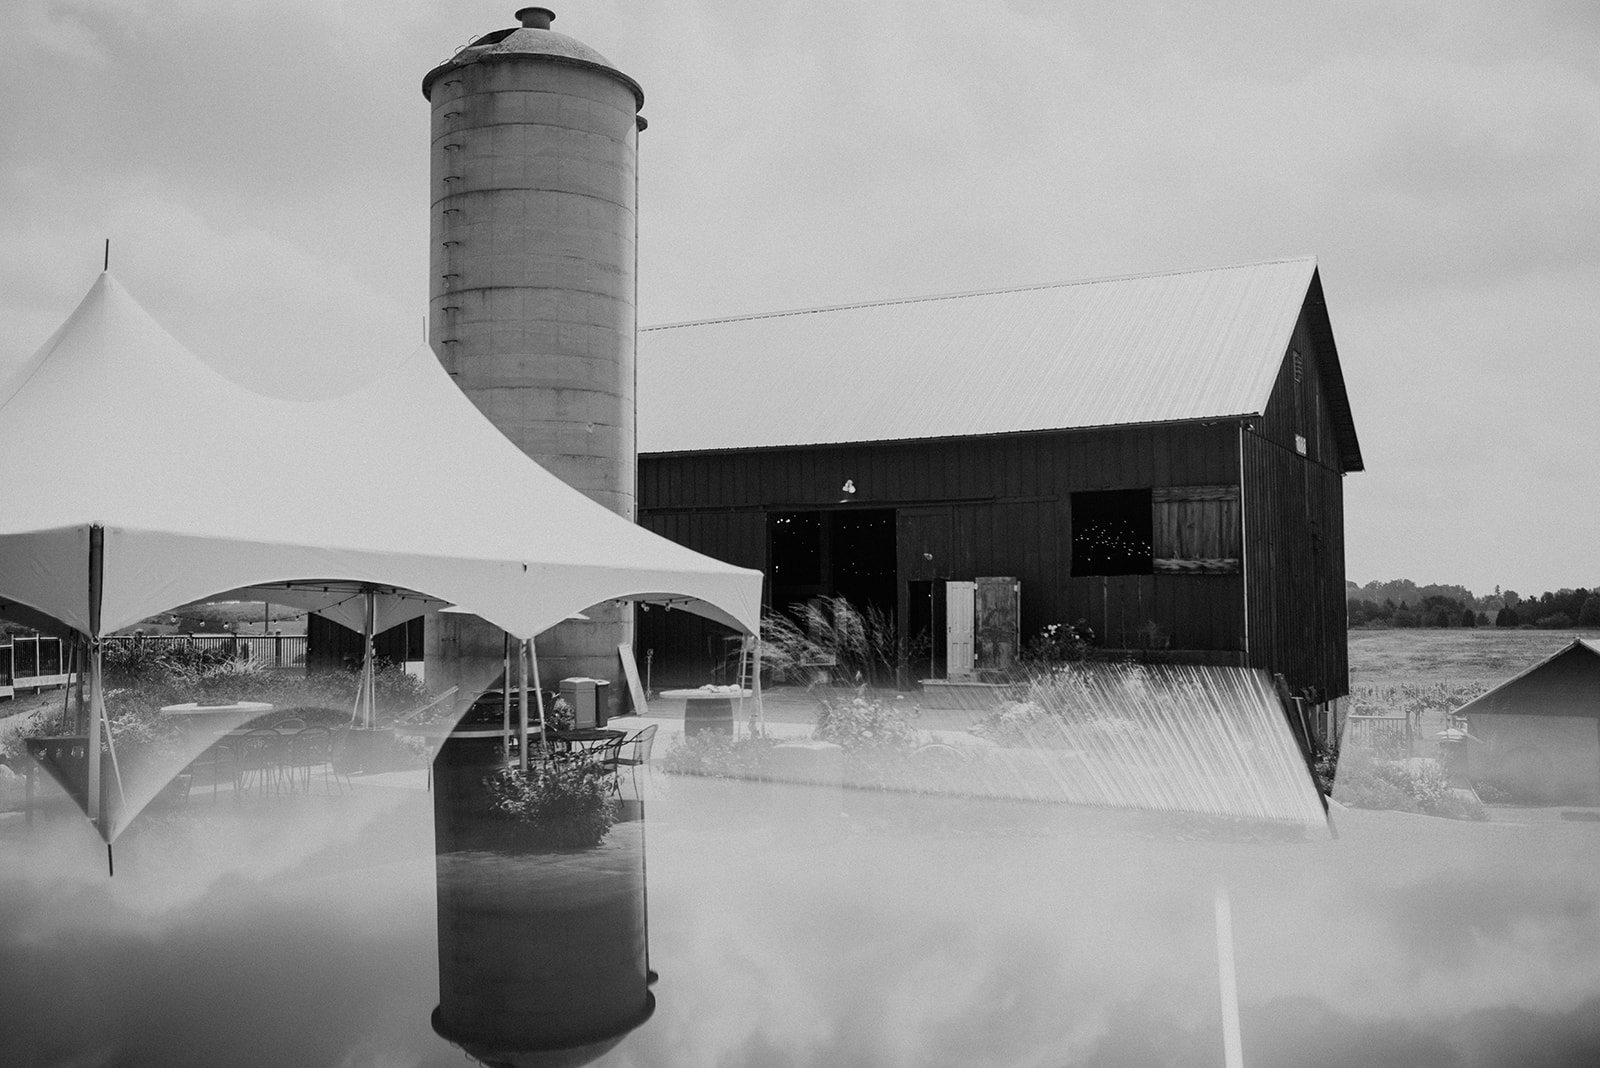 overthevineswisconsinwedding_0006.jpg